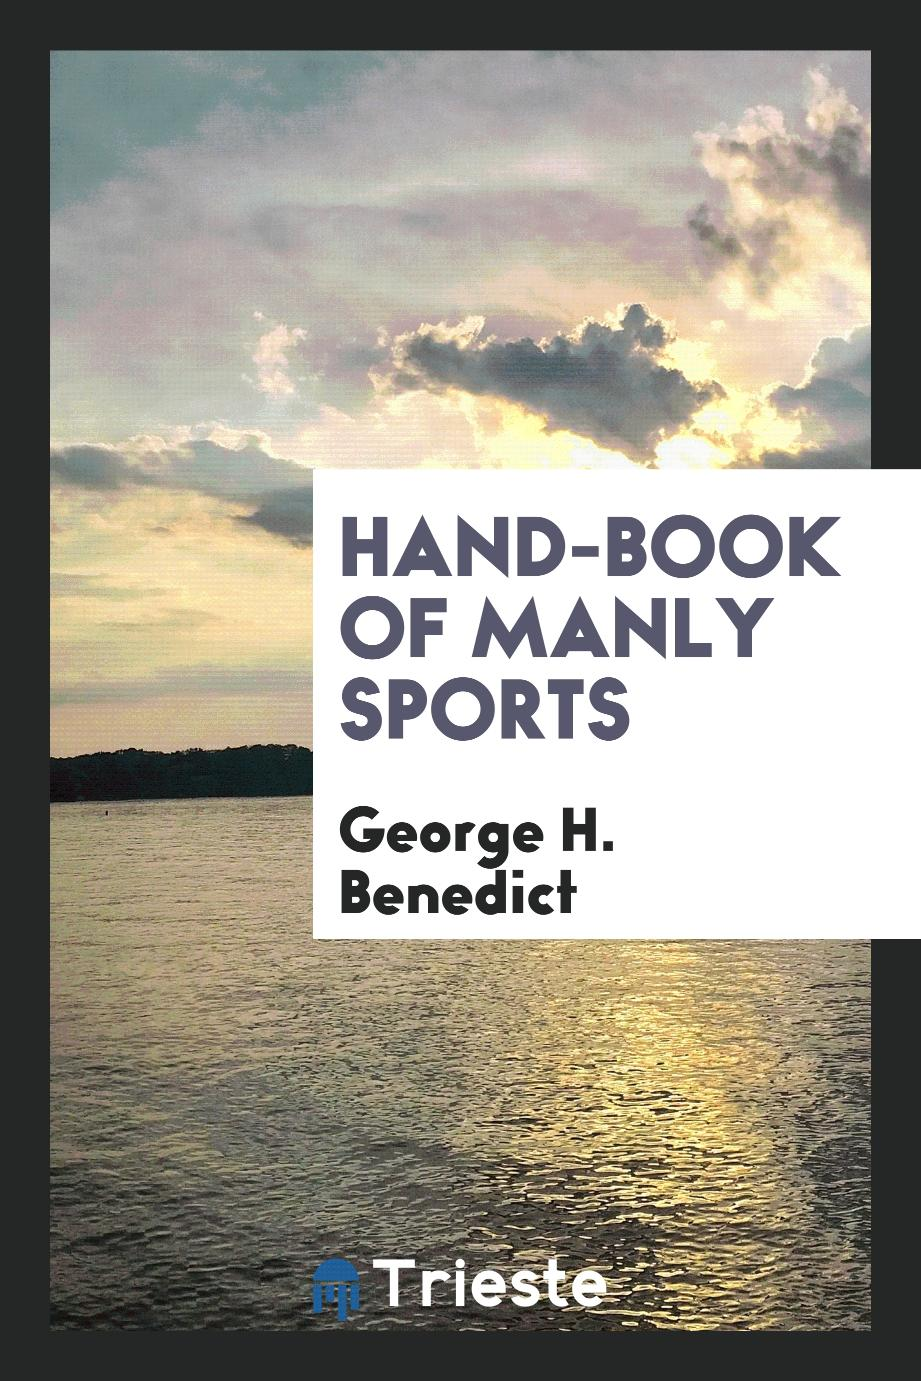 Hand-Book of Manly Sports